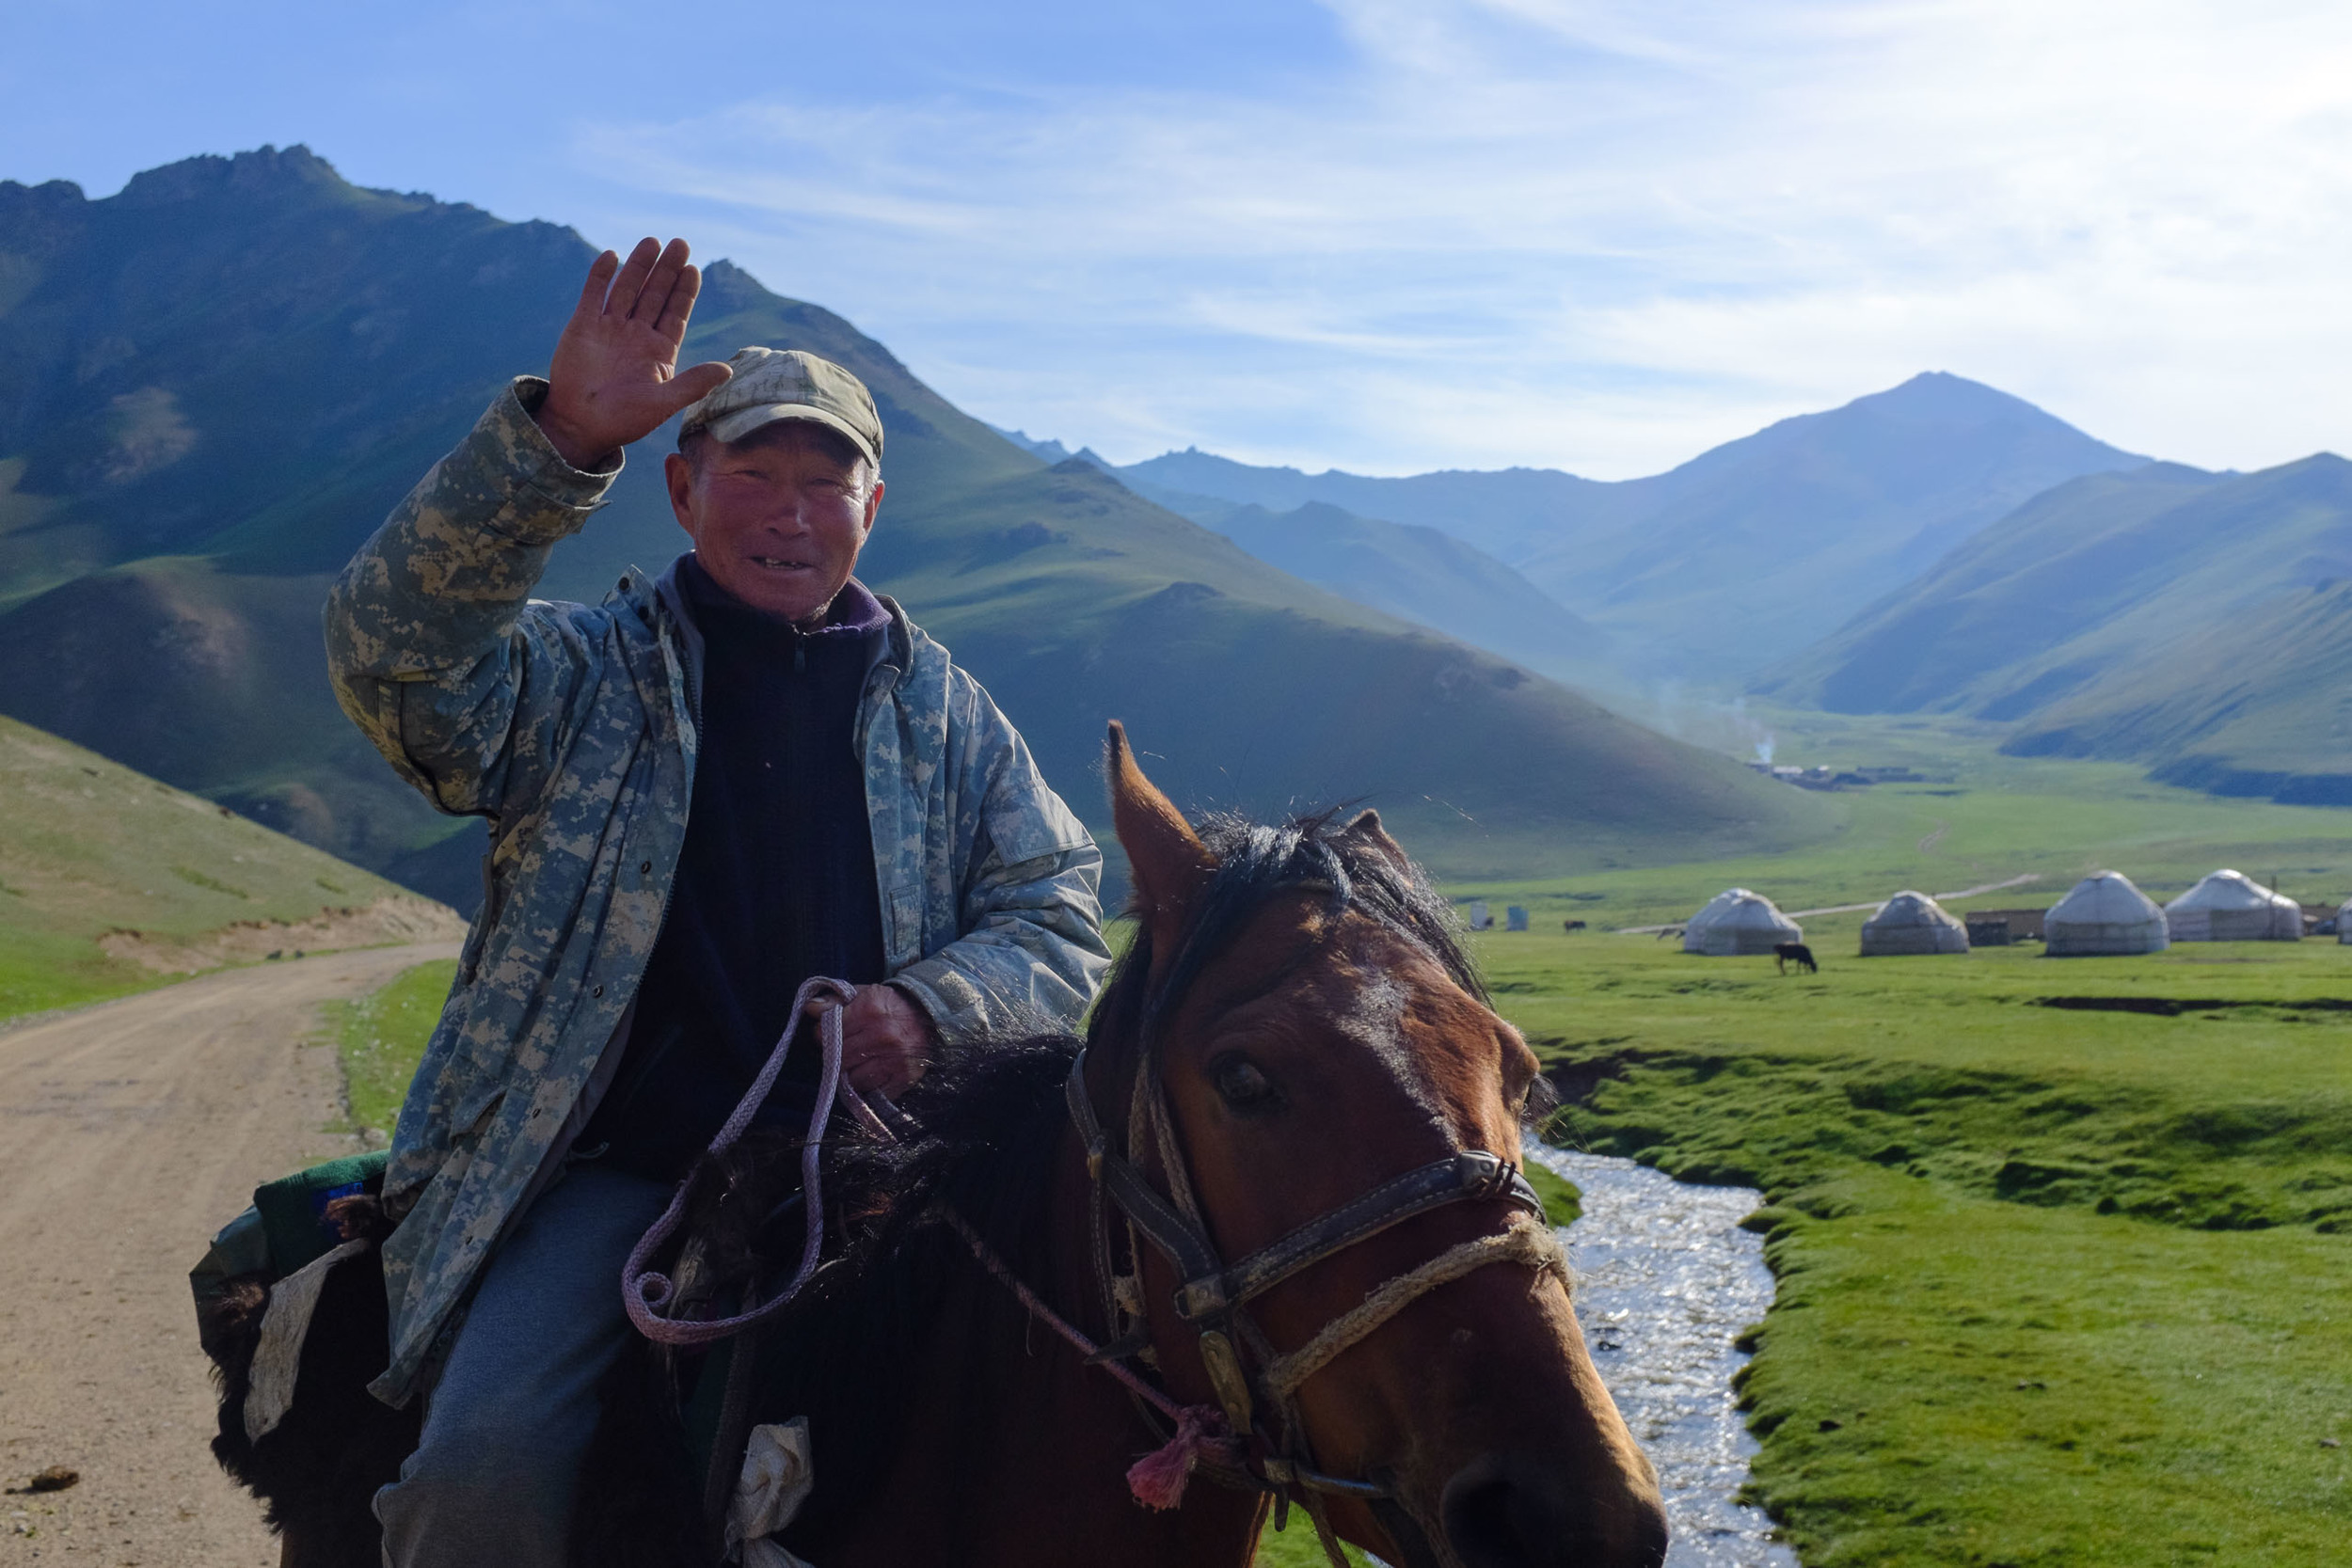 A Kyrgyz cowboy greets us on our way out of the Tash Rabat valley